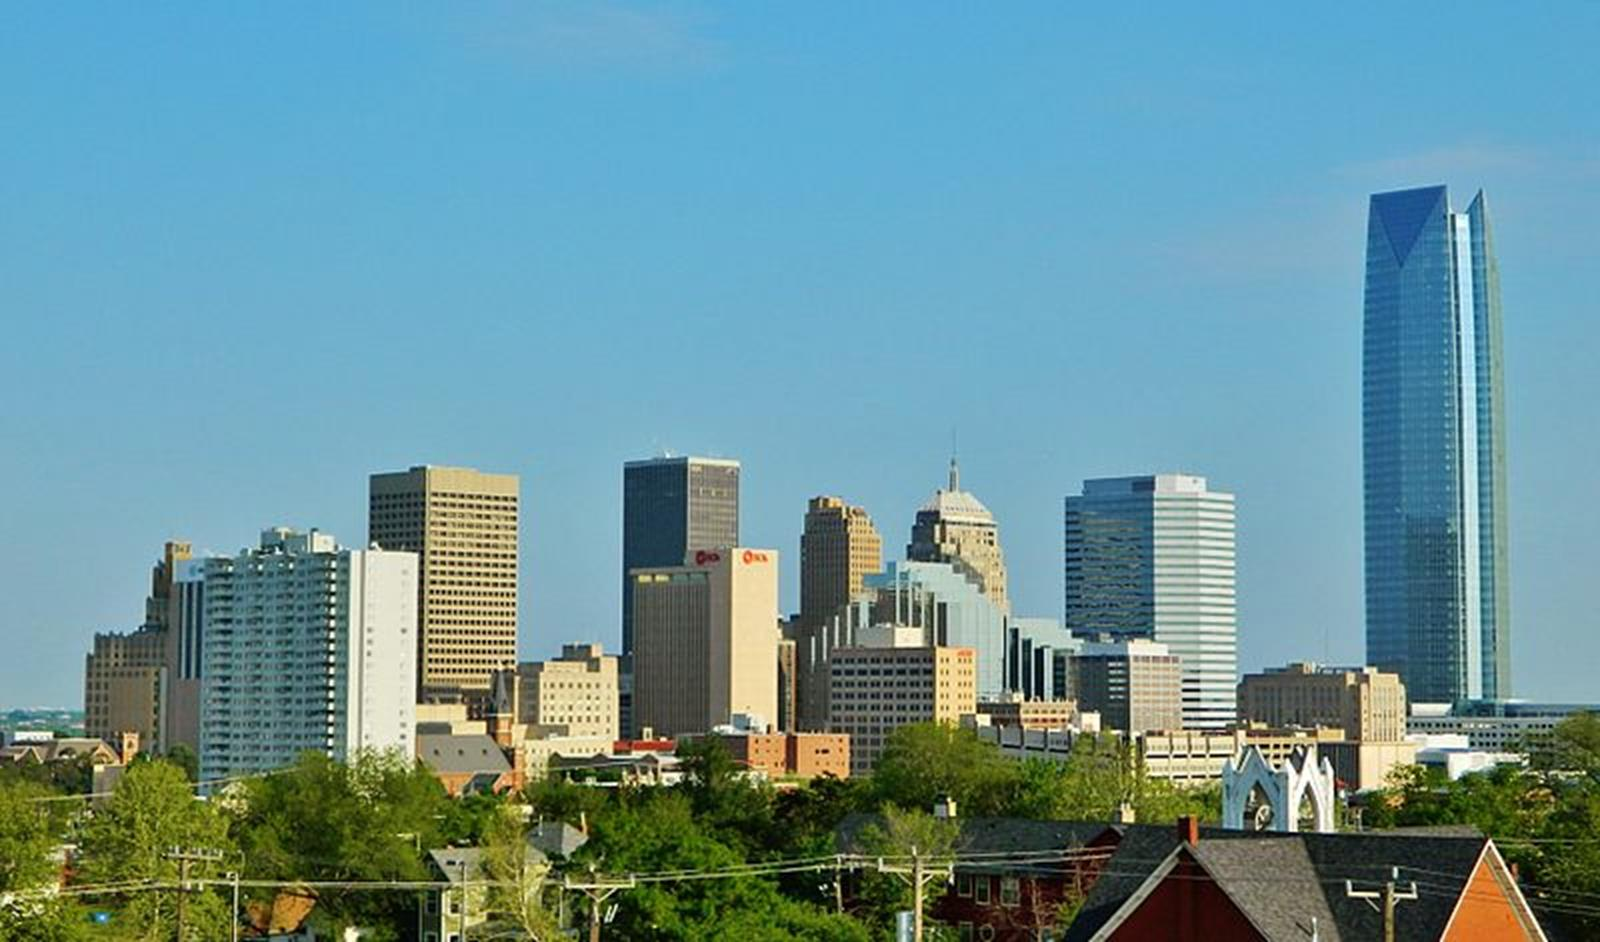 Oklahoma City Downtown. Credit: Wikipedia